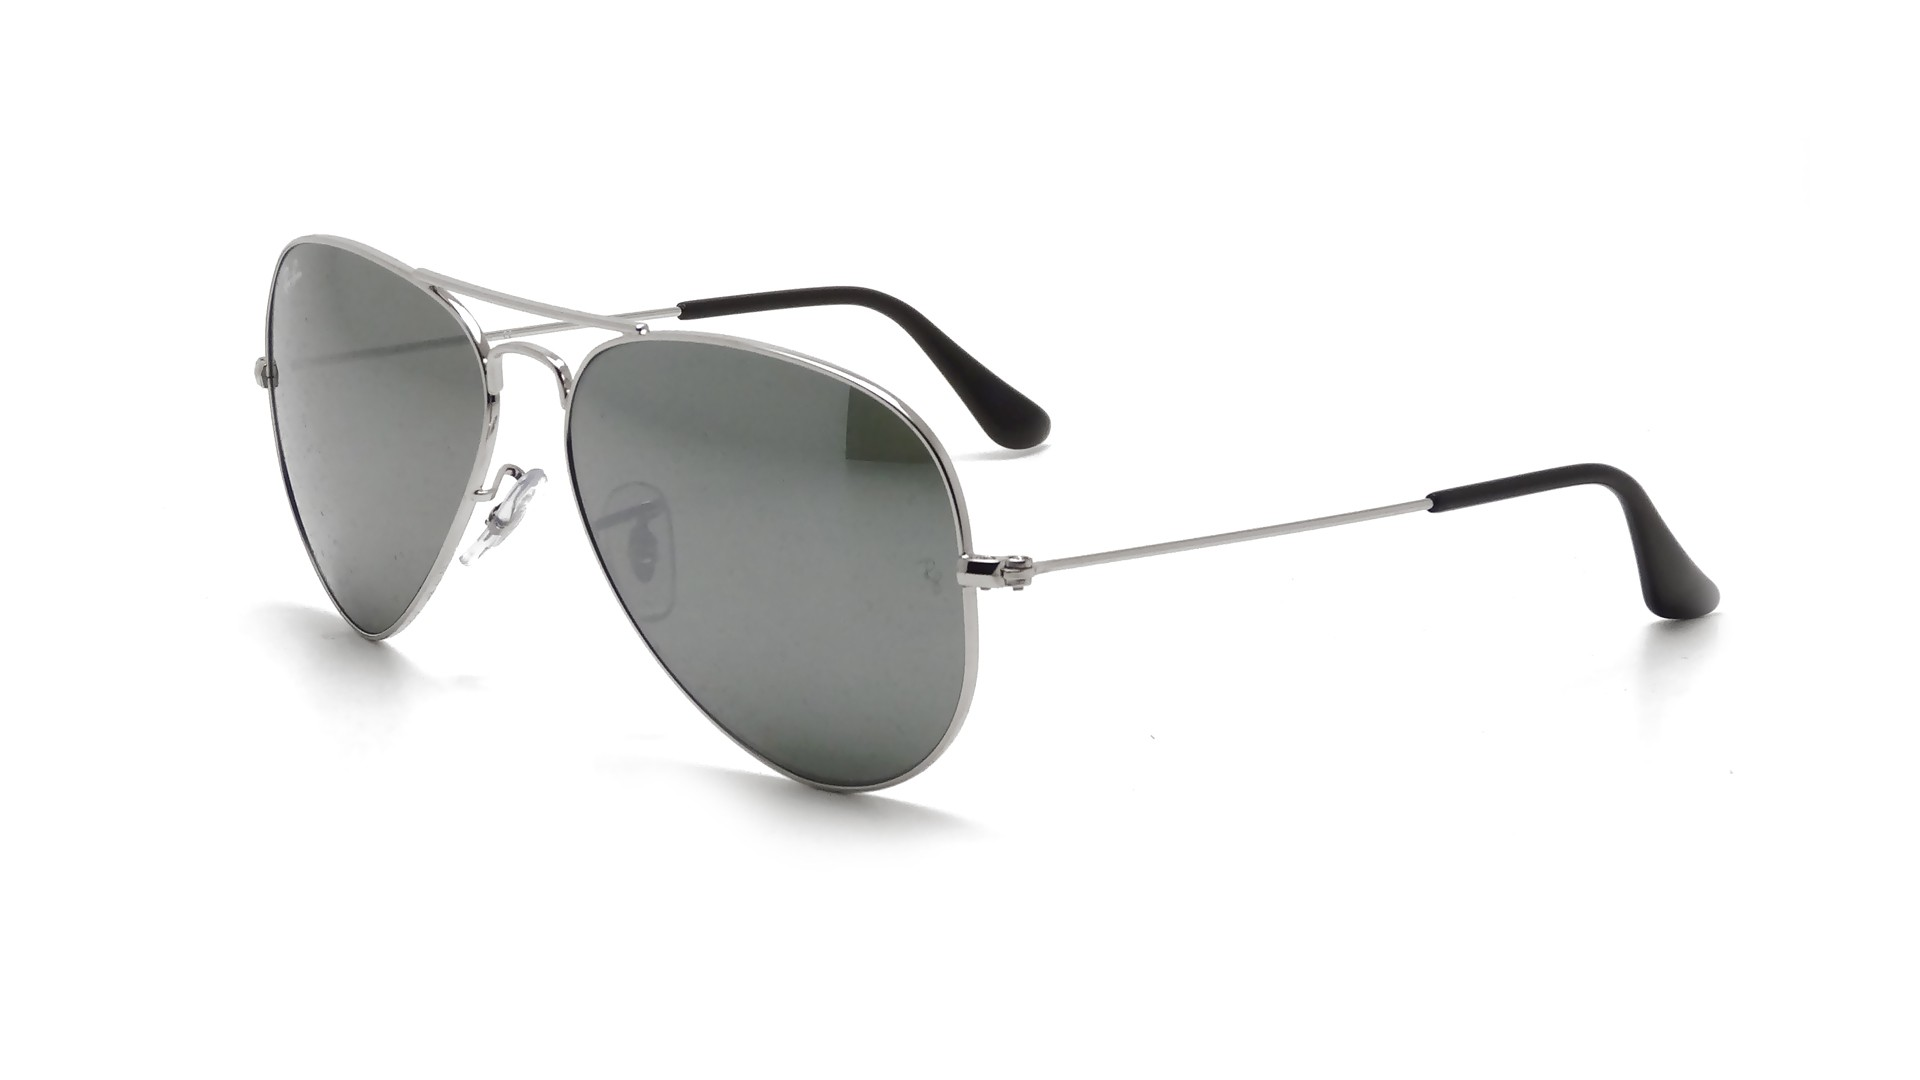 c98b305d257c4 Sunglasses Ray-Ban Aviator Large Metal Silver RB3025 W3277 58-14 Large  Mirror